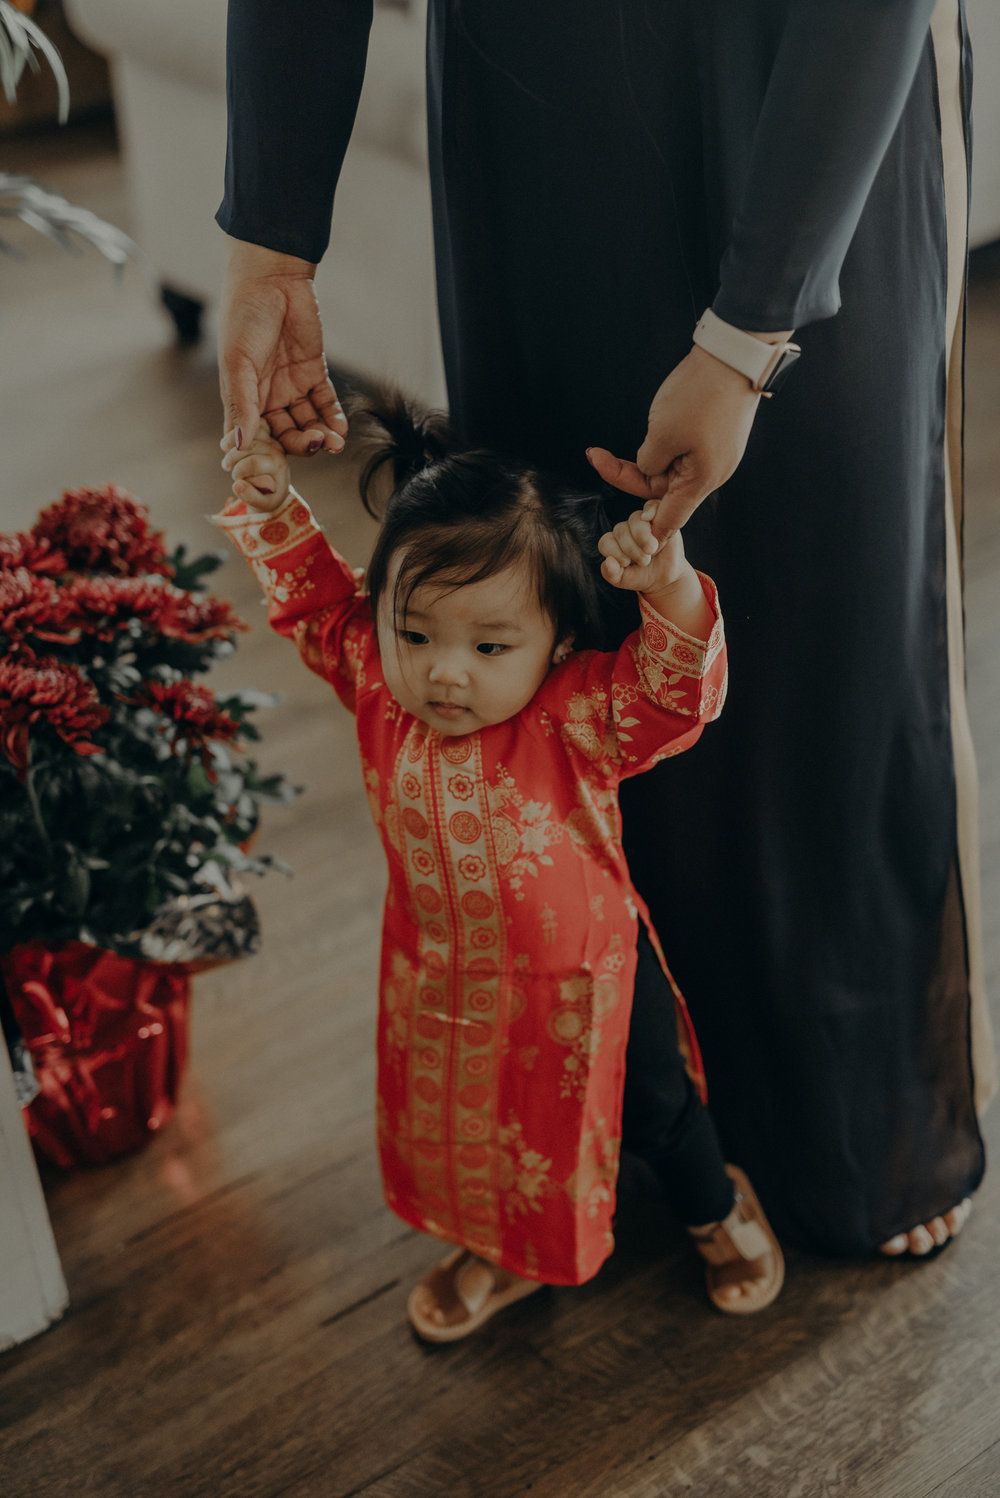 Los Angeles Wedding Photographer - IsaiahAndTaylor.com - The Ebell of Long Beach Wedding - Traditional Vietnamese tea ceremony-039.jpg